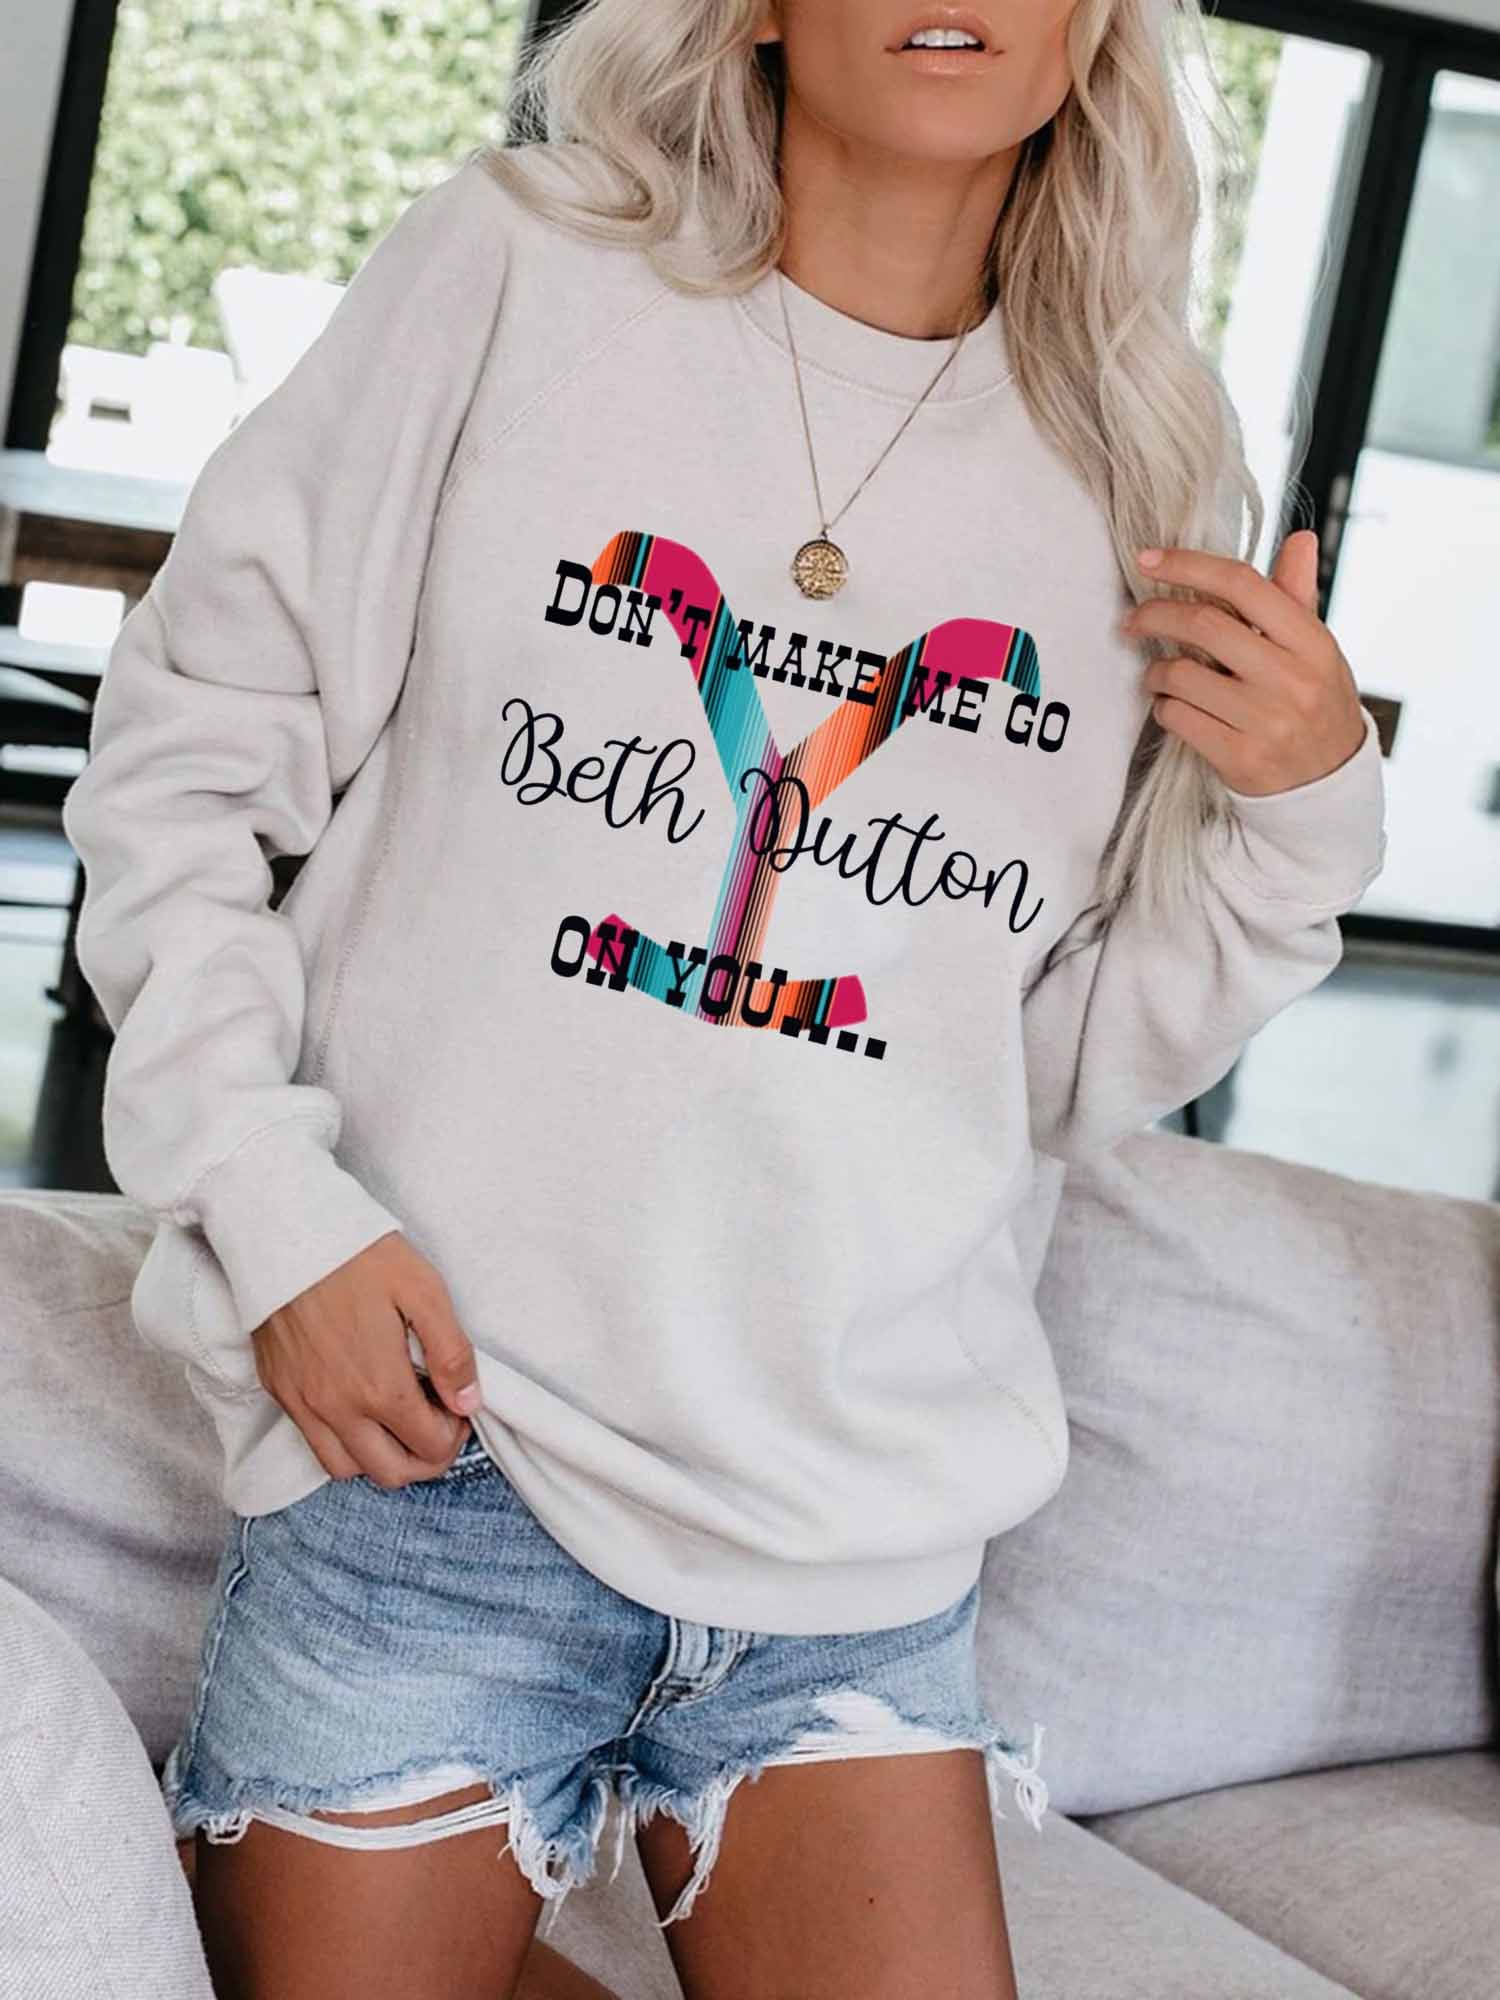 Instyle Letter Printing Design With Simple And Stylish Round Neck Sweater Suitable For Energetic Young Ladies And Girls 0